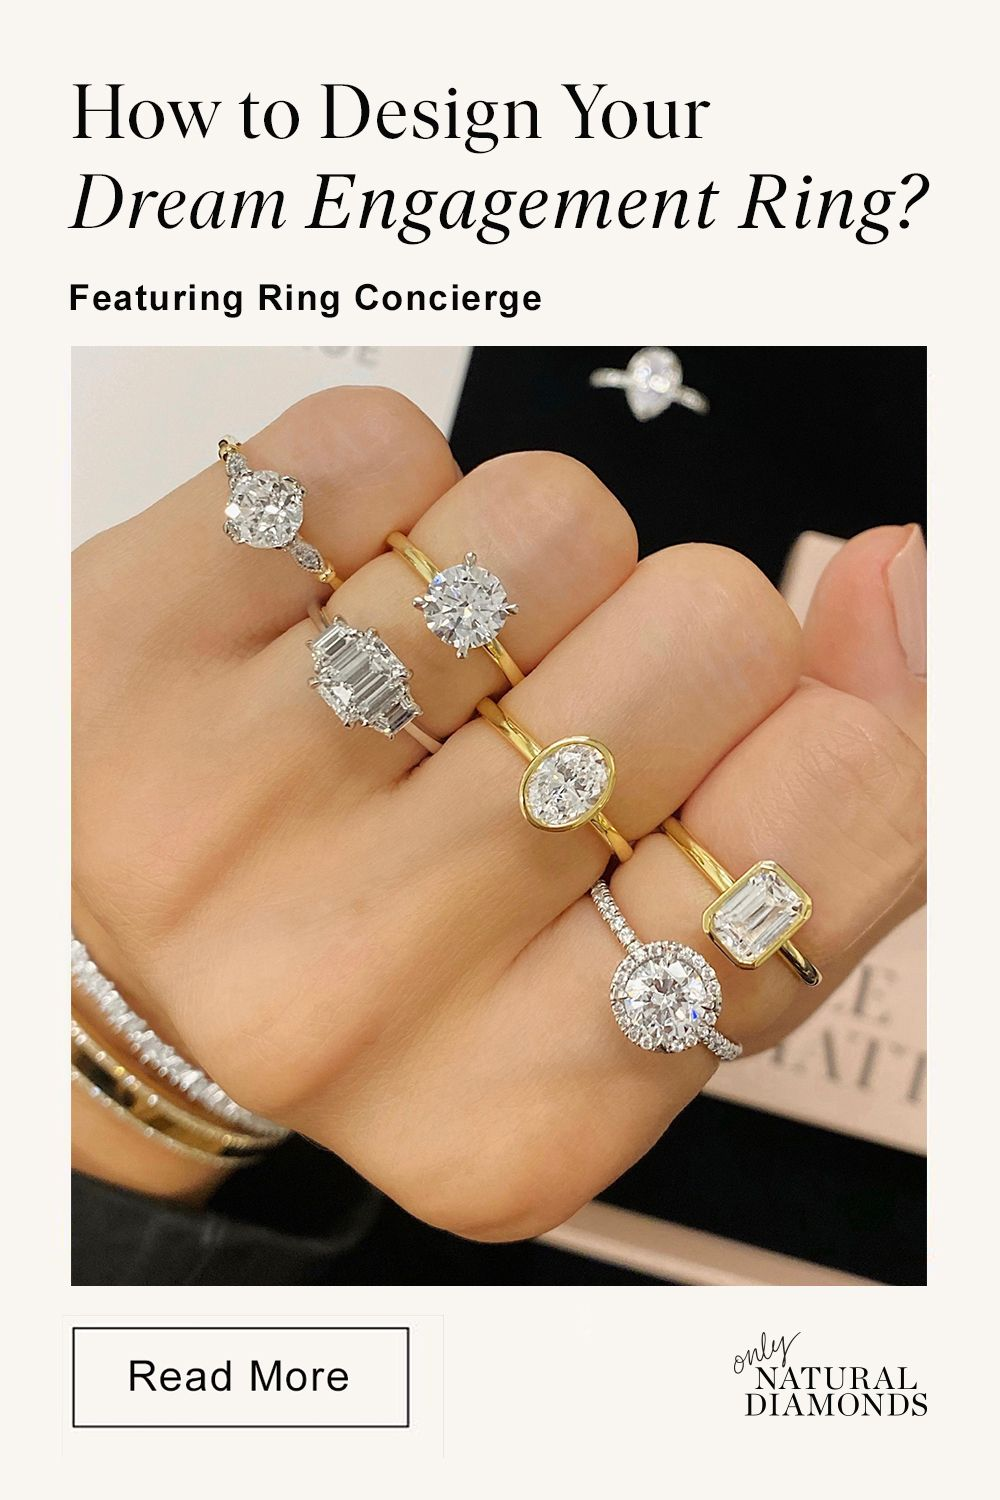 How To Design Your Dream Engagement Ring In 2020 Future Engagement Rings Dream Engagement Rings Wedding Rings For Women